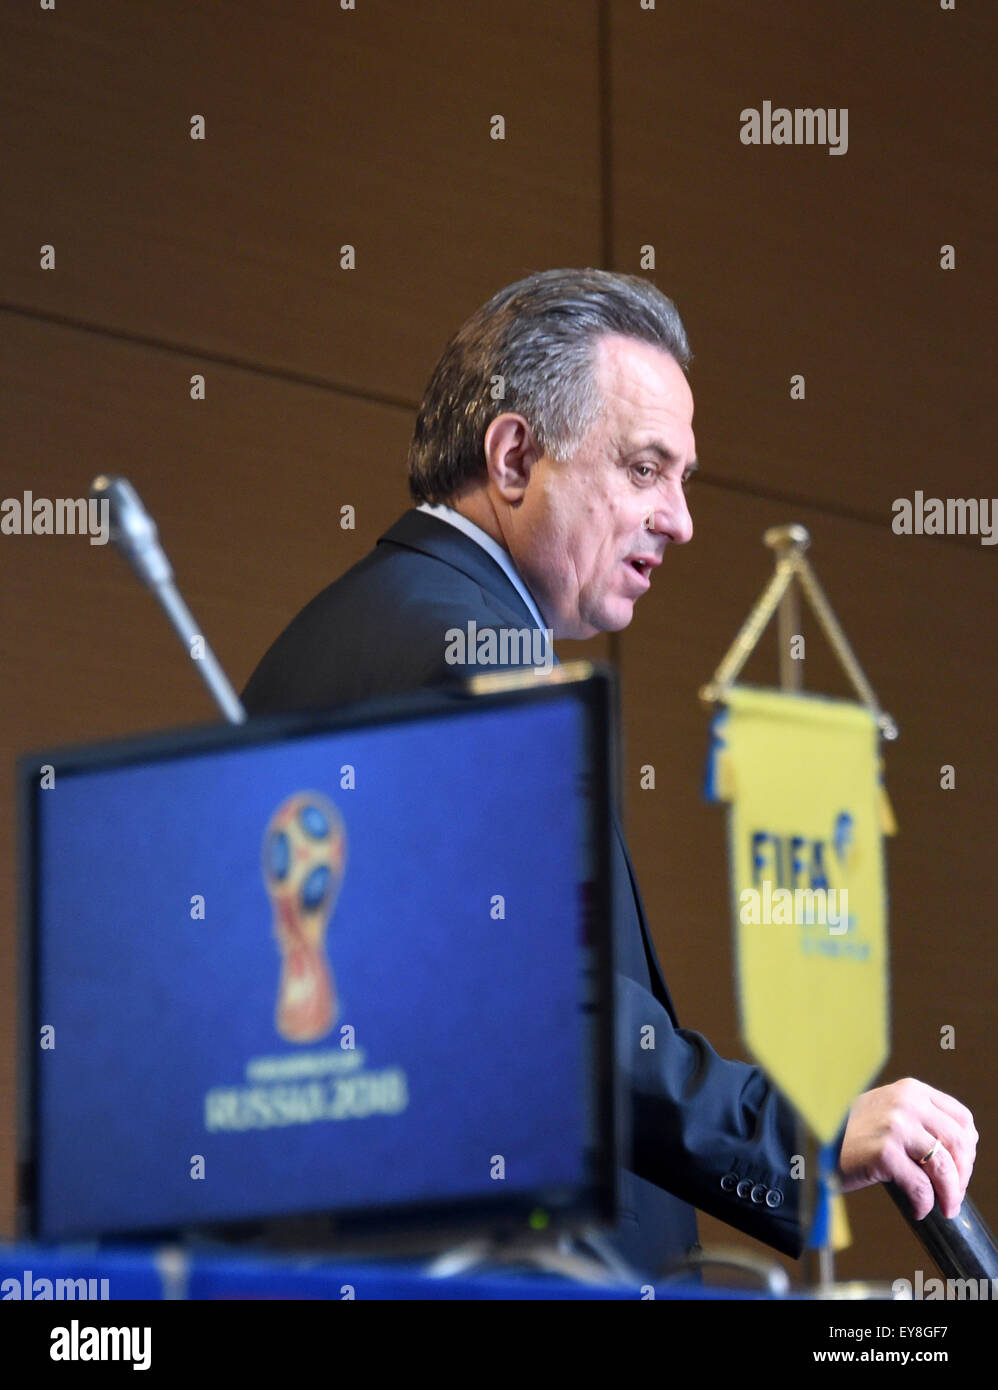 St. Petersburg, Russia. 24th July, 2015. Russian Sport Minister Vitaly Mutko stands on stage after a FIFA news conference - Stock Image